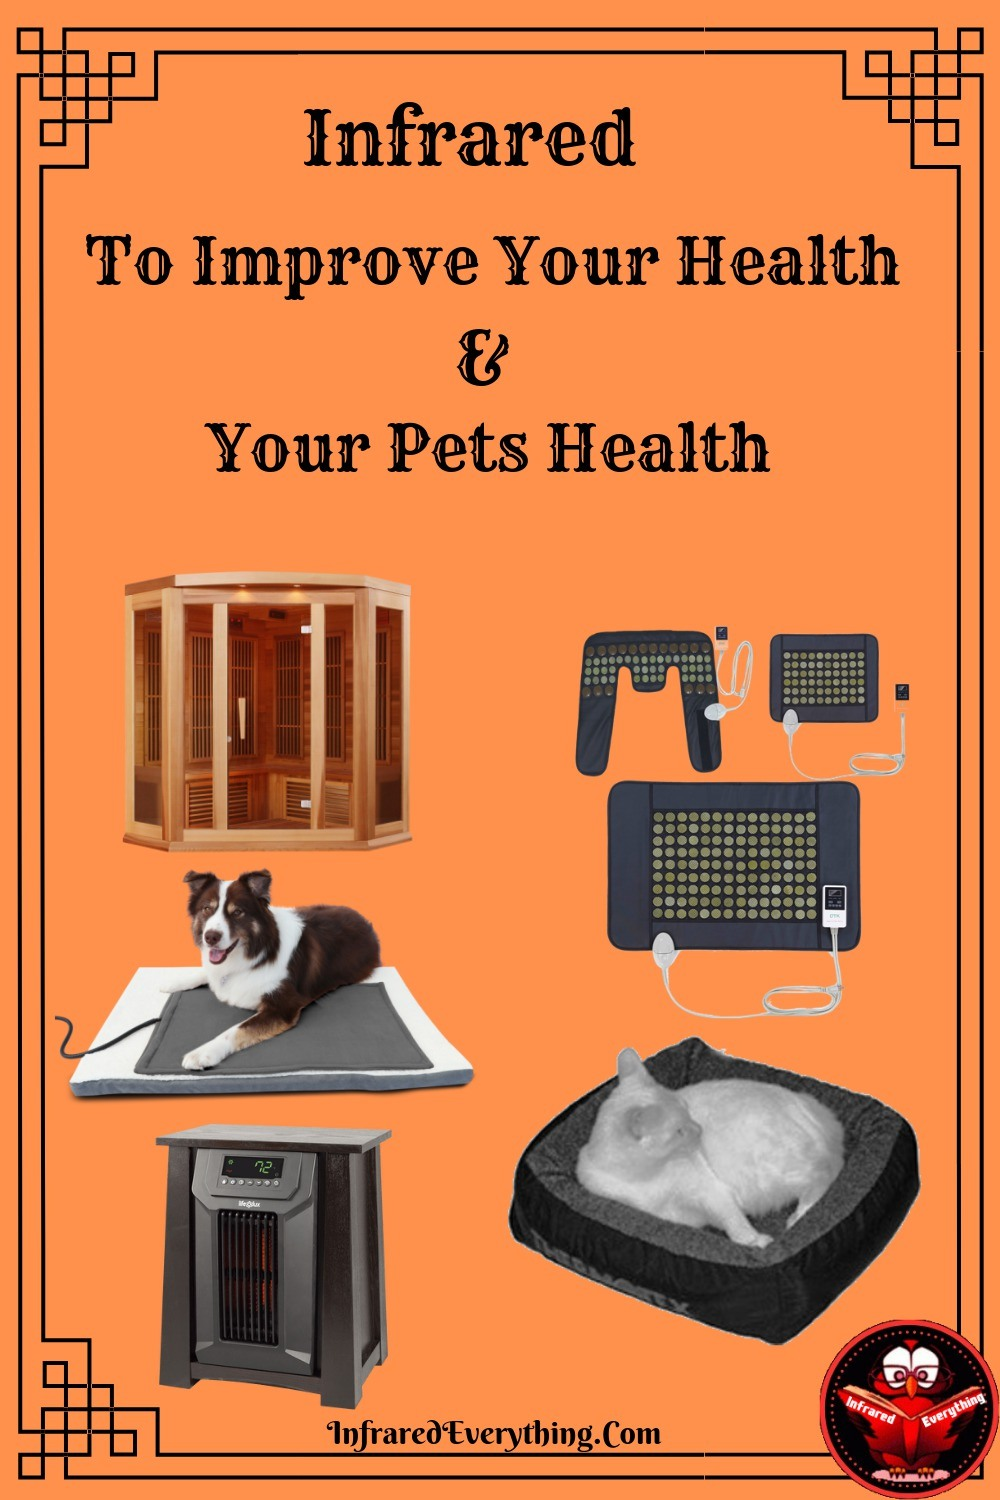 5 Infrared Products For Your Health